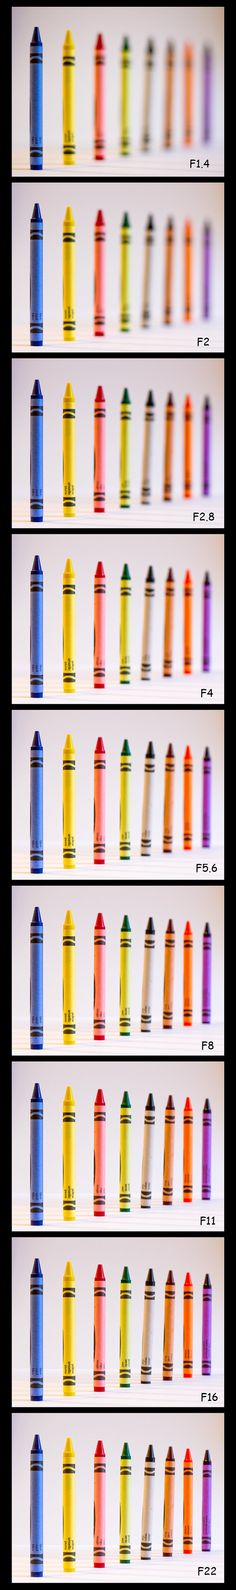 Photography 101 Tutorial: How To Use Aperture